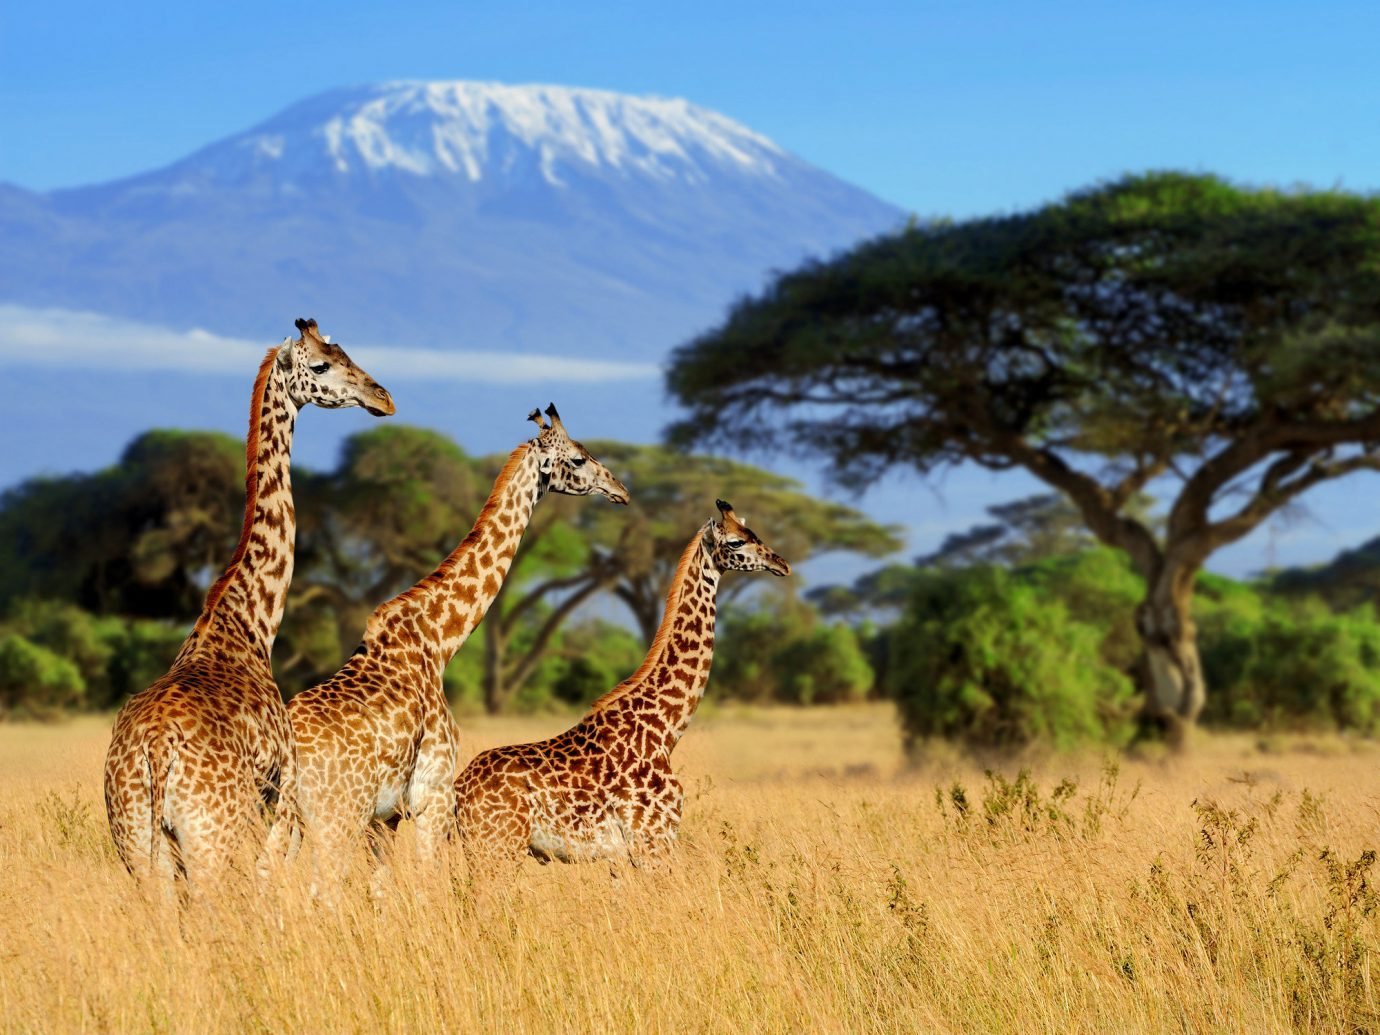 Trip Ideas outdoor grass sky animal field giraffe savanna mammal Wildlife fauna ecosystem natural environment mountain giraffidae grassland Safari grassy Adventure tall plain prairie